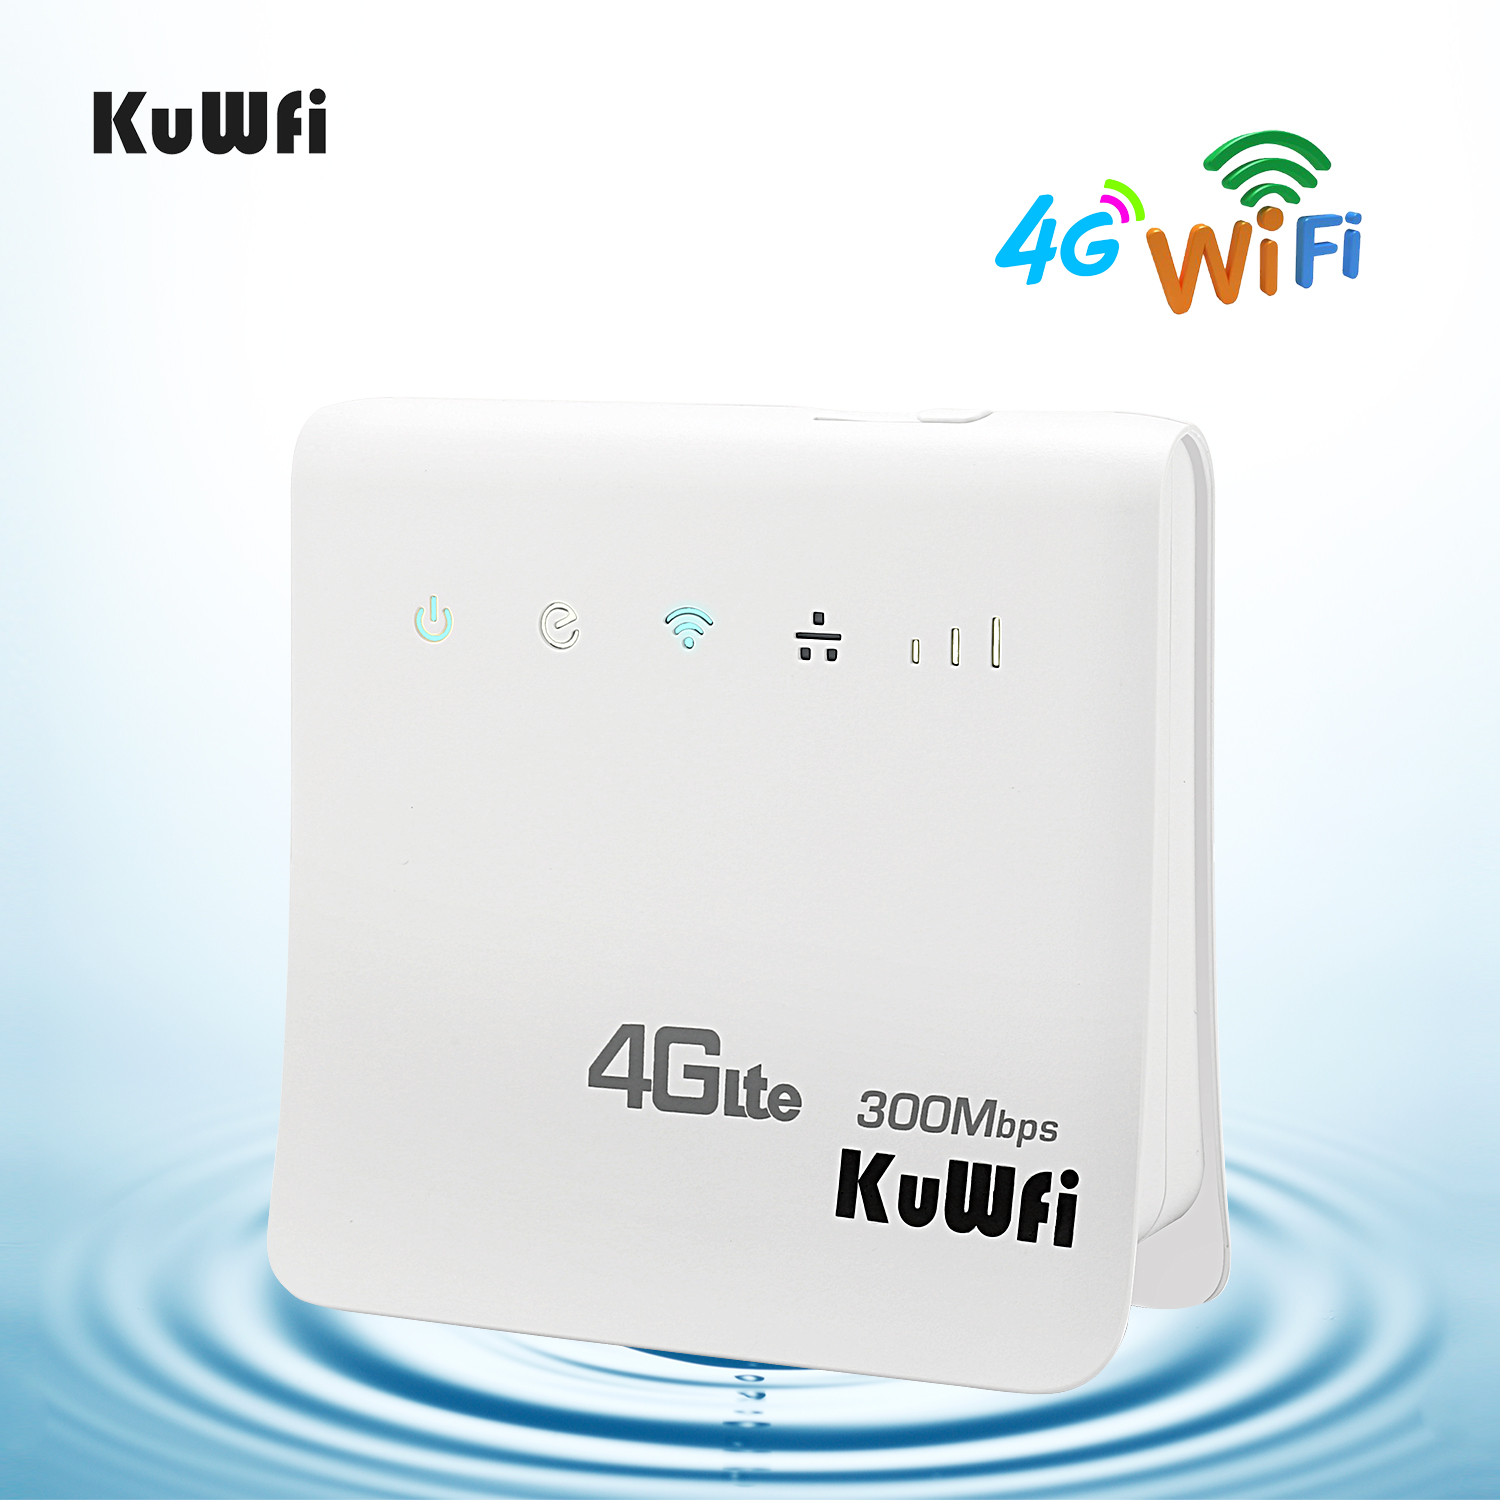 Unlocked 300Mbps Wifi Routers or 4G LTE CPE Mobile Router with LAN Port Support and SIM card 1